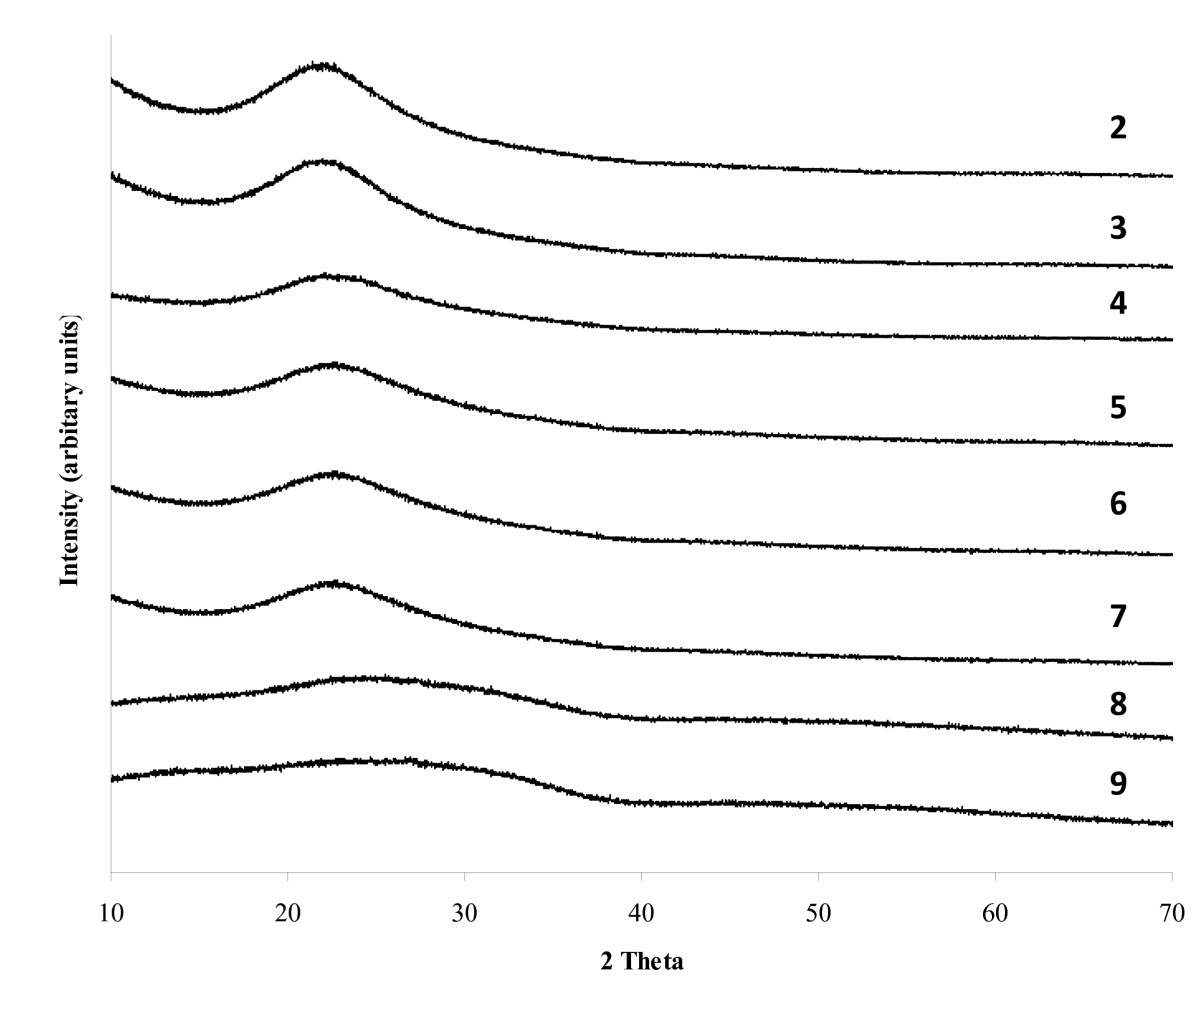 http://static-content.springer.com/image/art%3A10.1186%2F1556-276X-6-192/MediaObjects/11671_2010_Article_128_Fig2_HTML.jpg